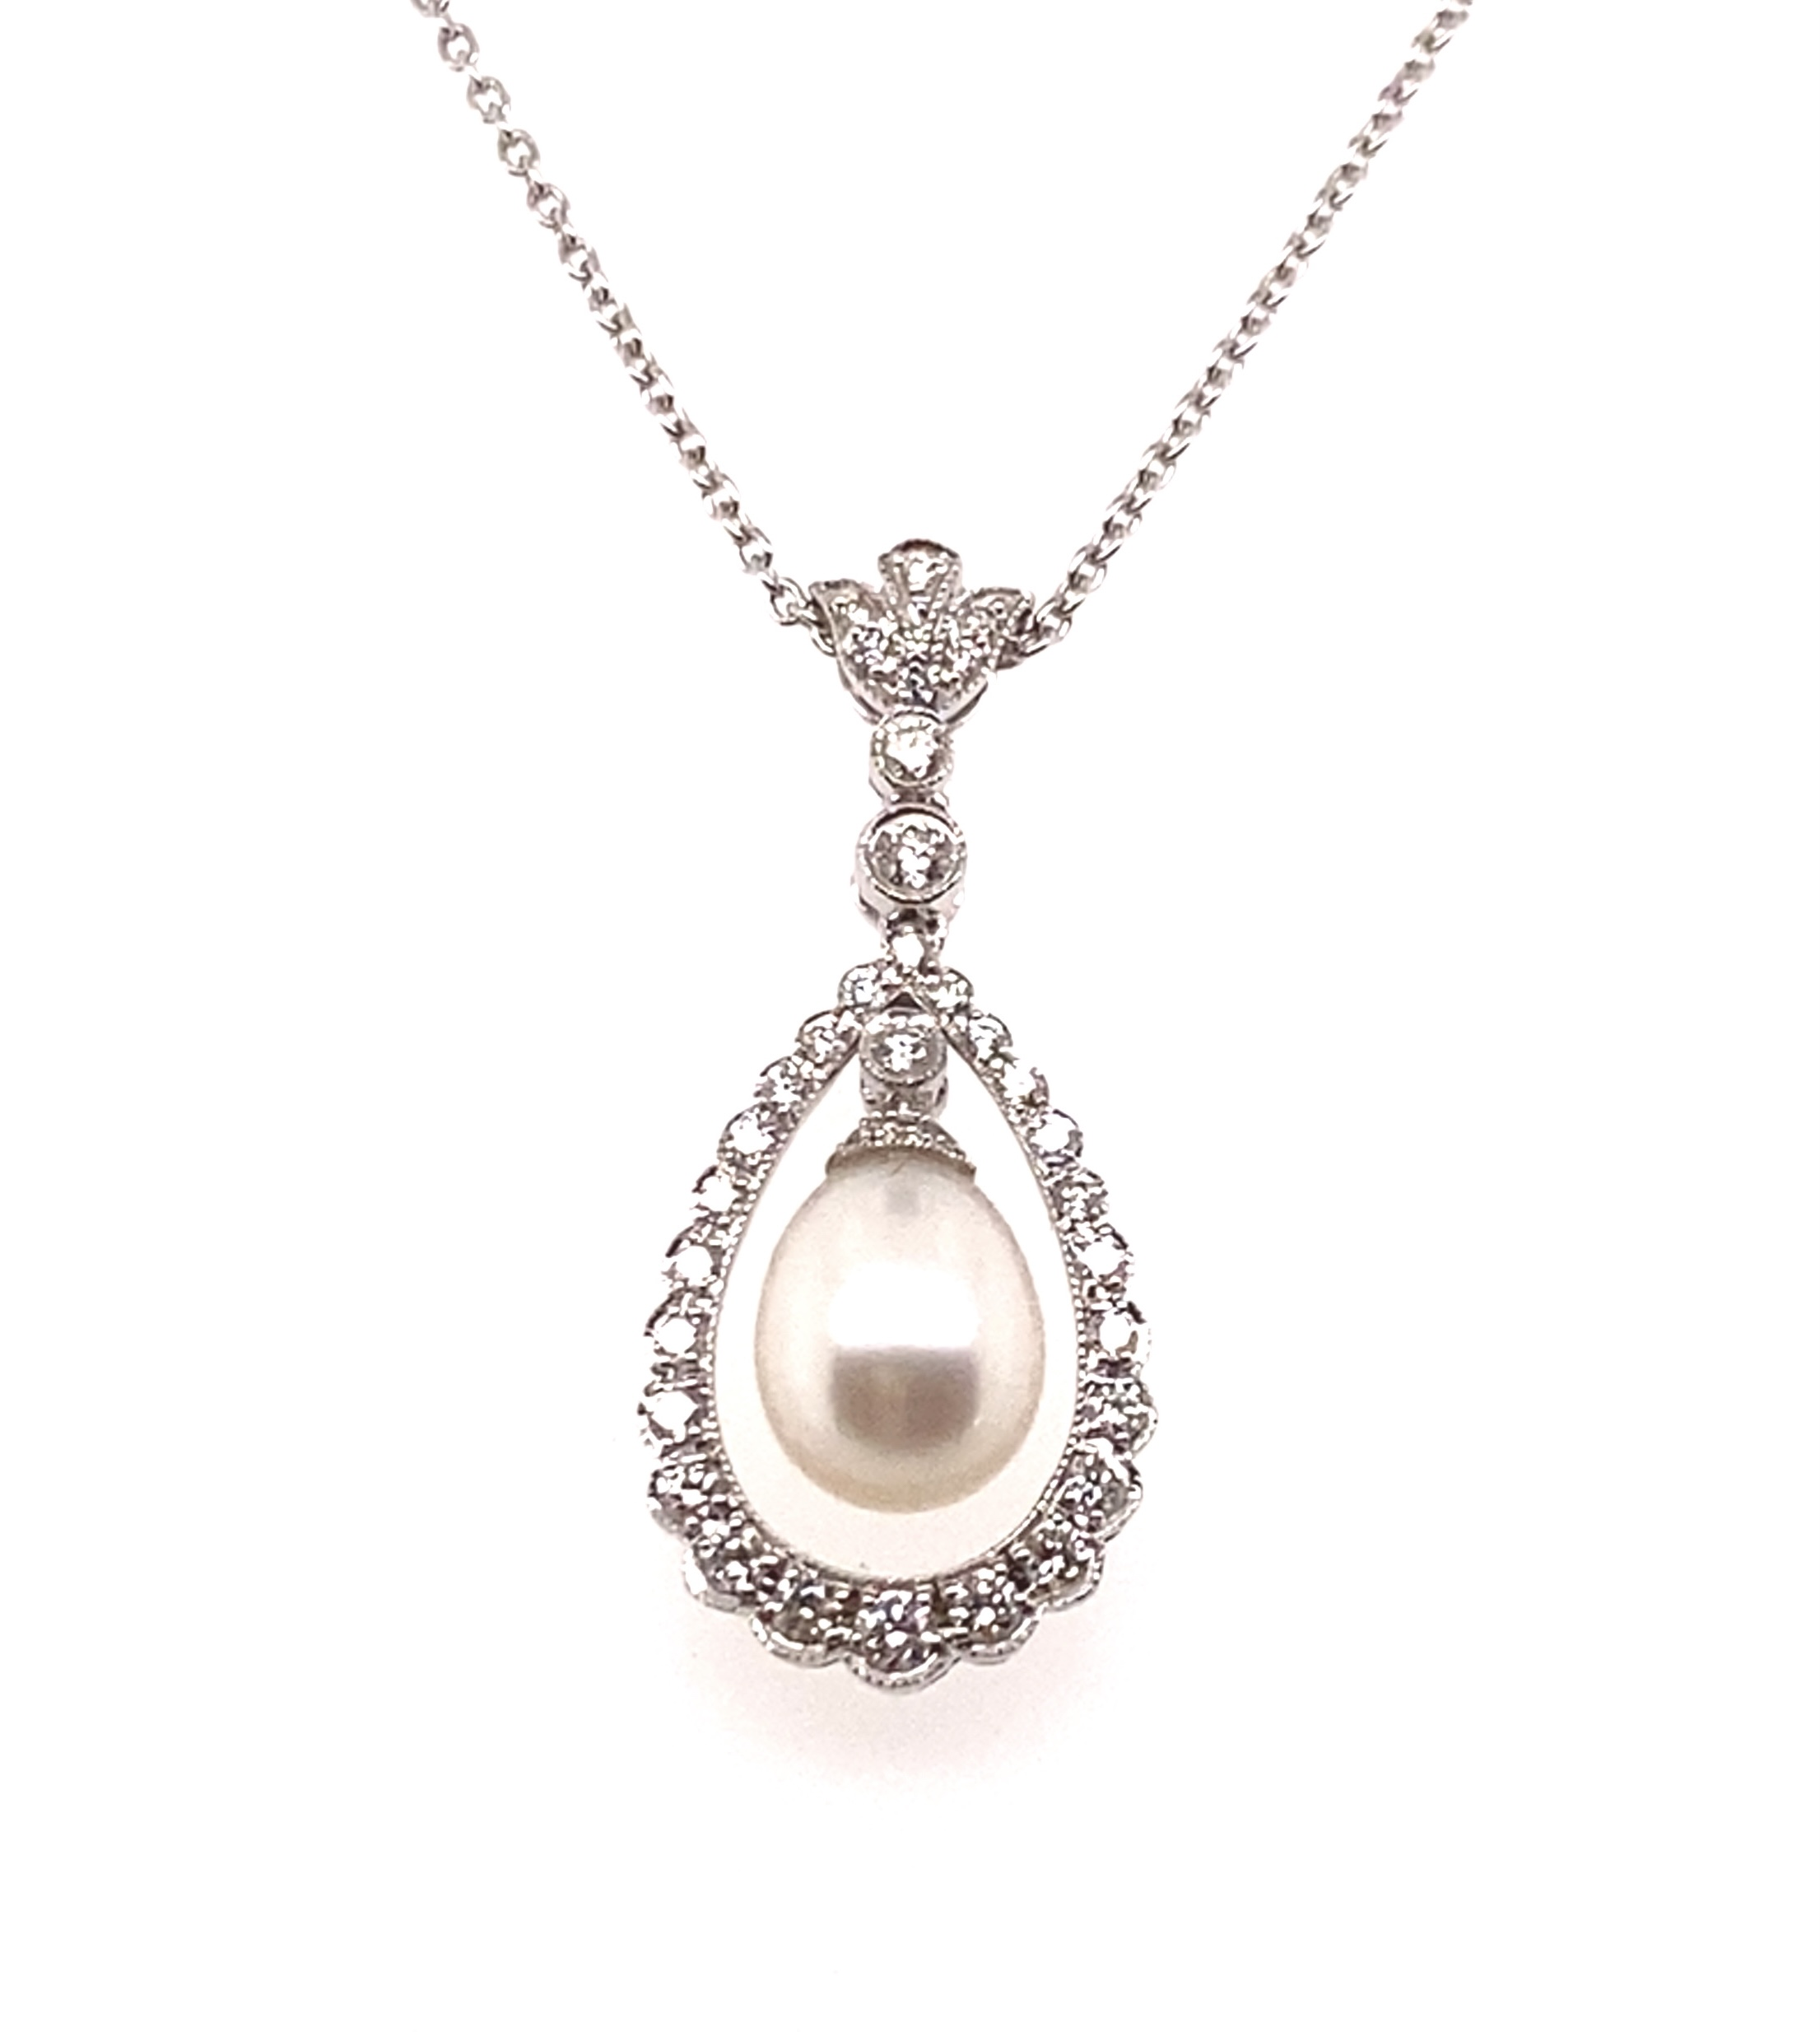 18 Carat White Gold Pearl and Diamond Necklace